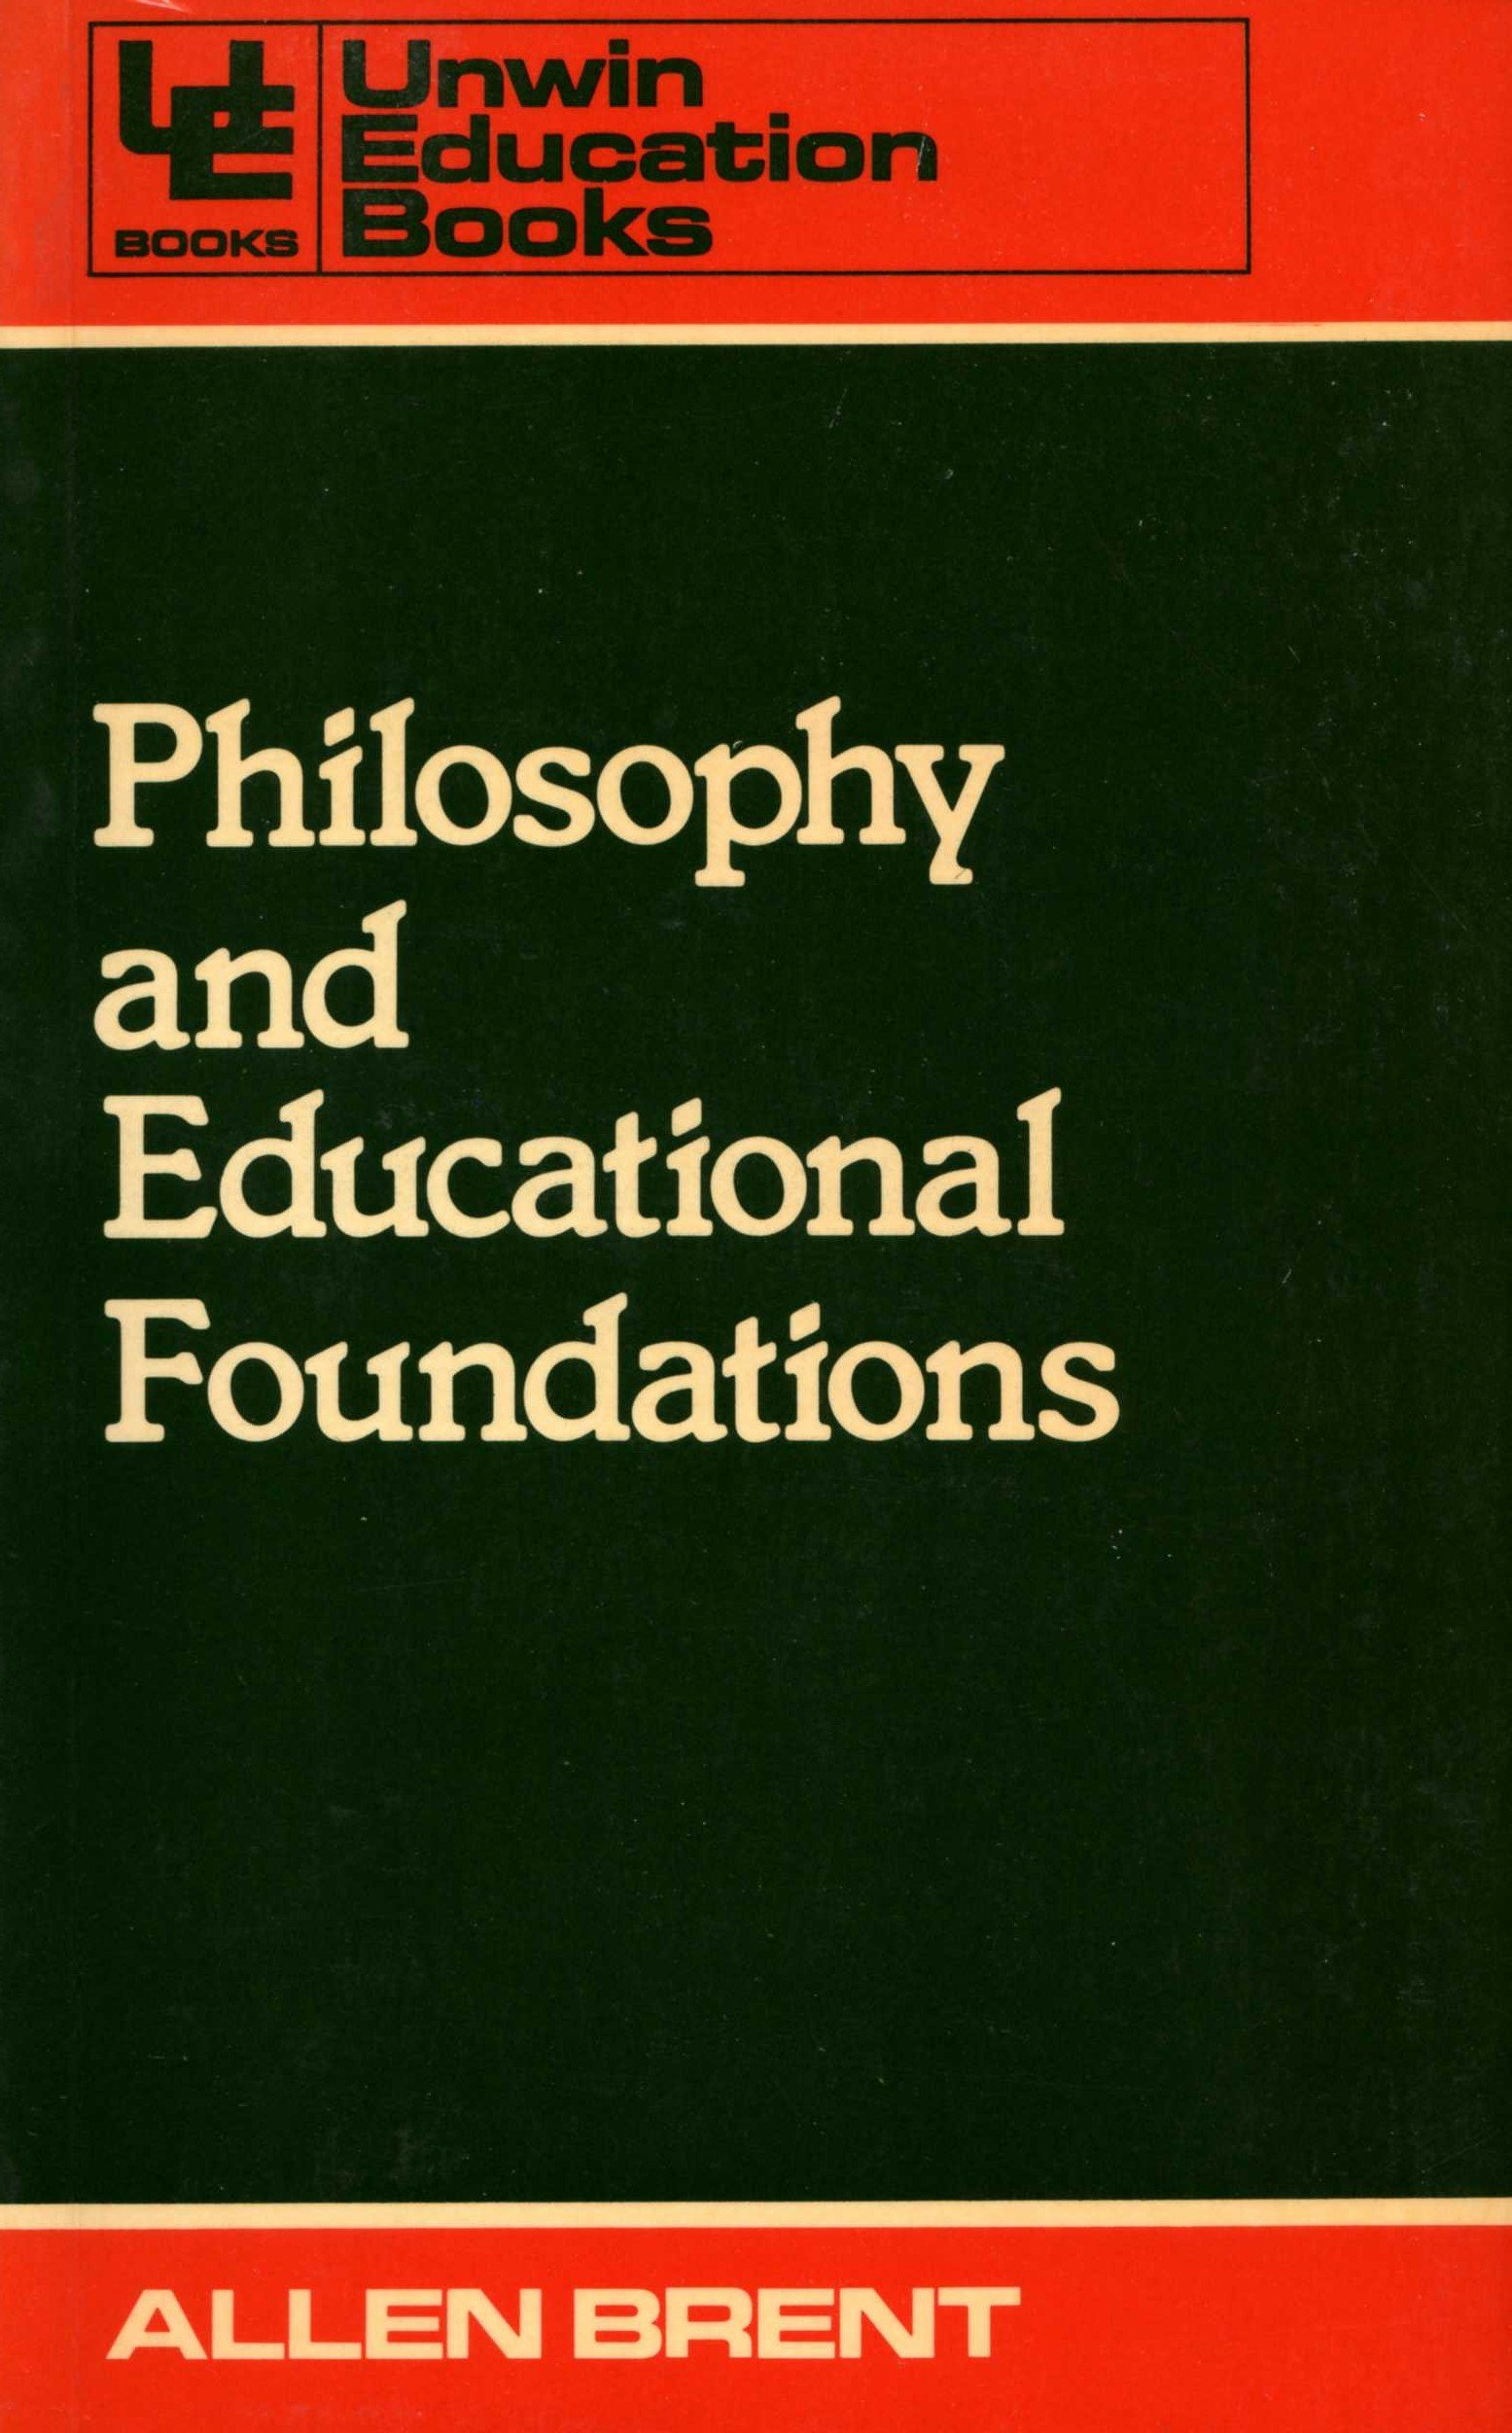 amazon philosophy and educational foundations education books